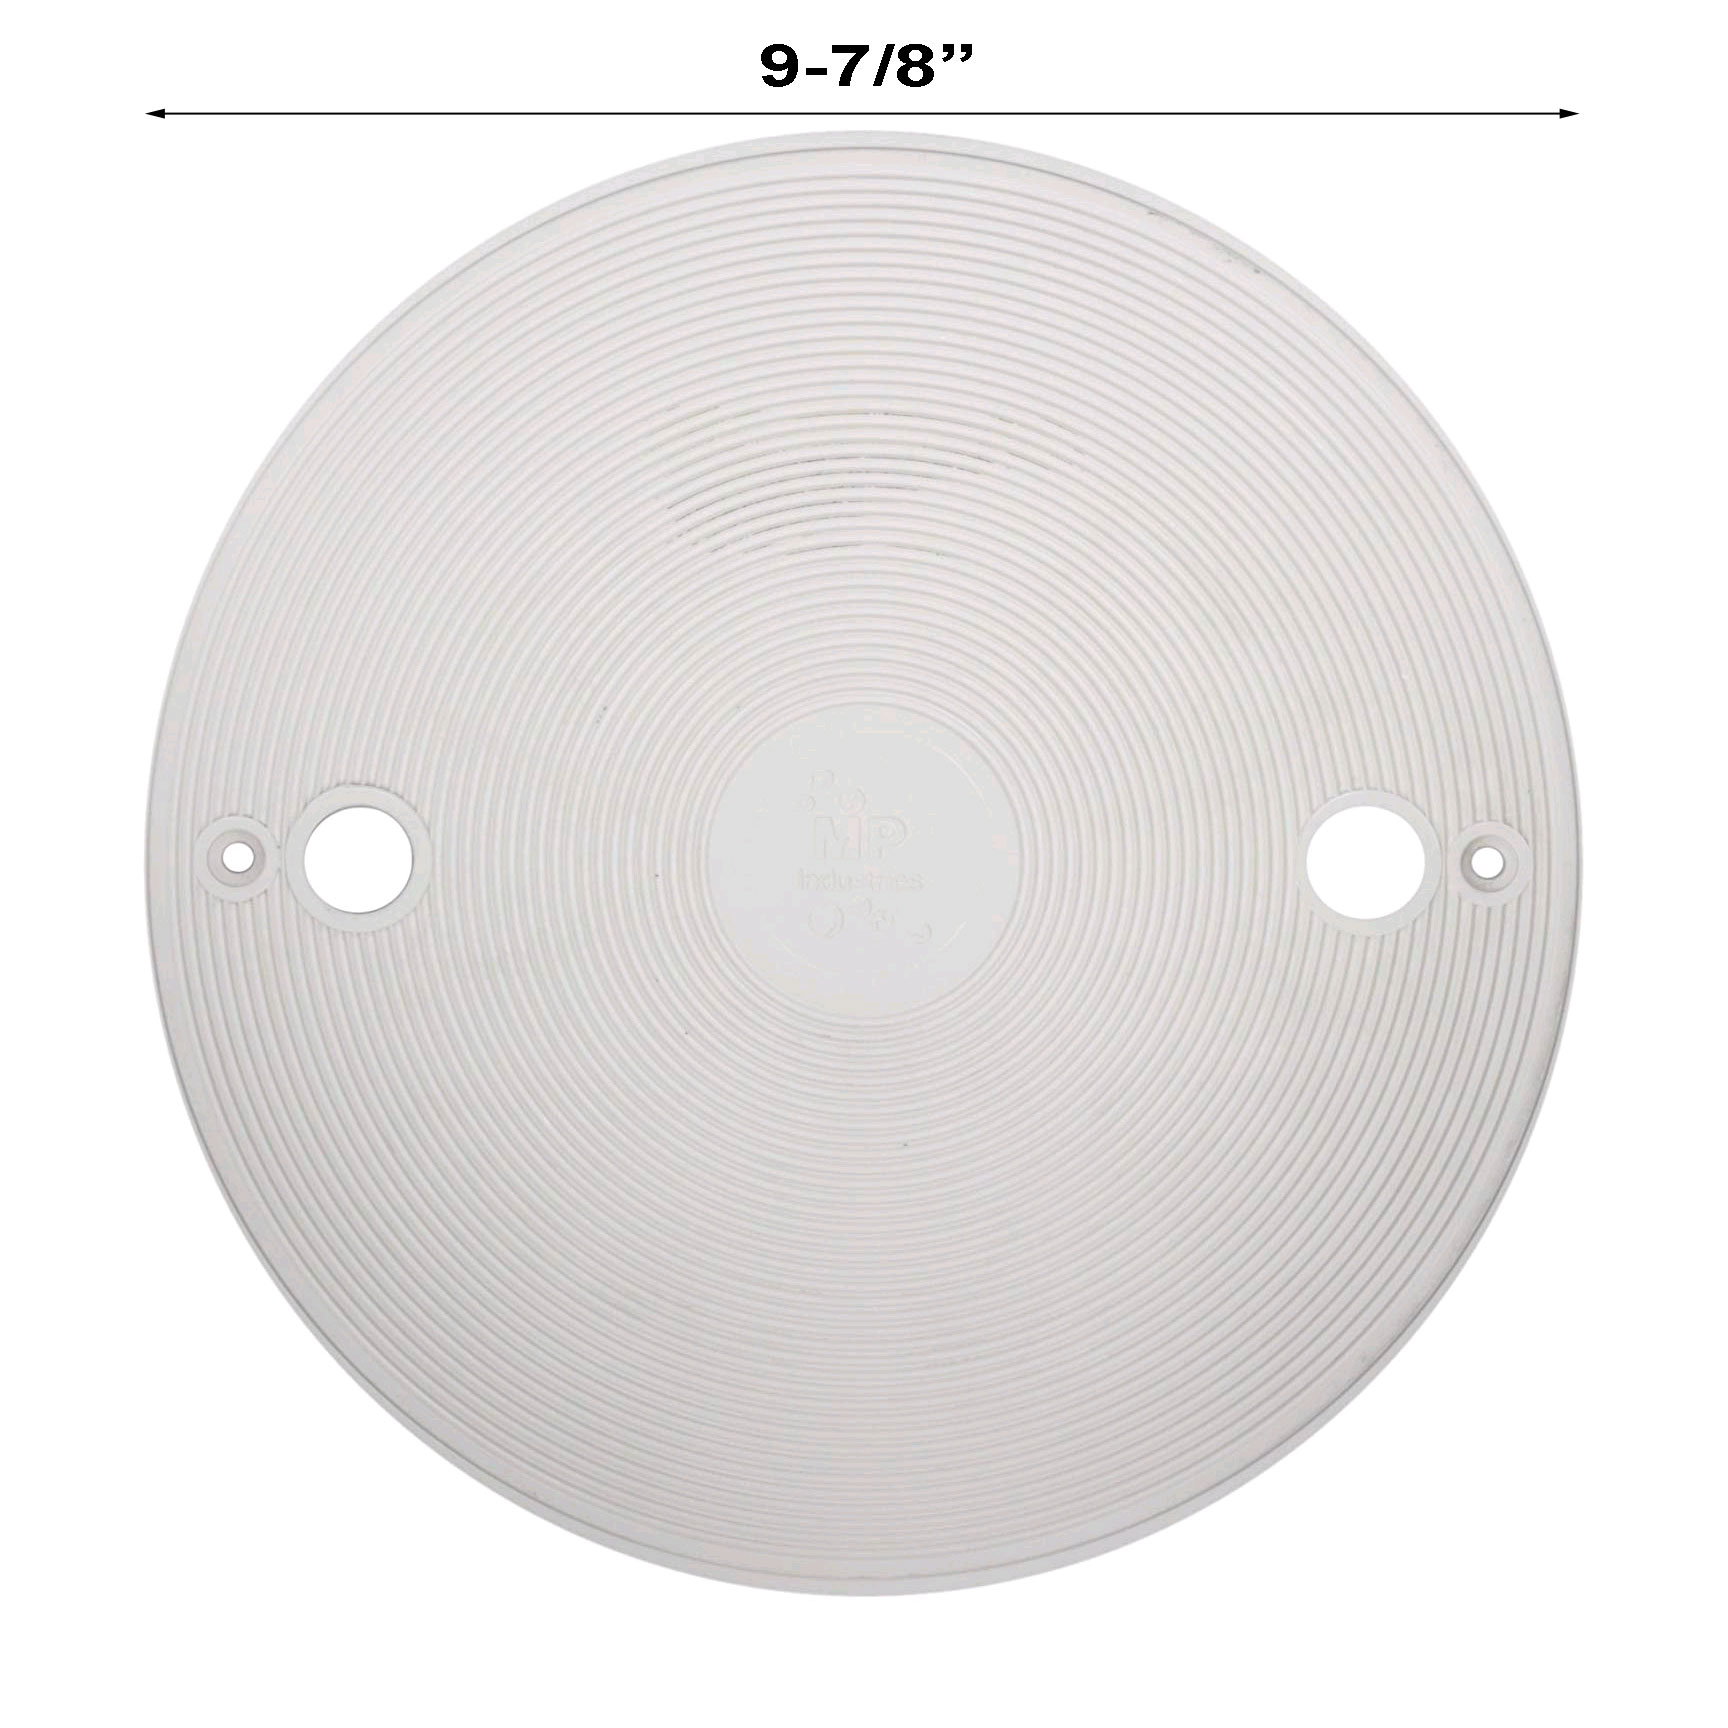 Replacement Lid White - 4061W